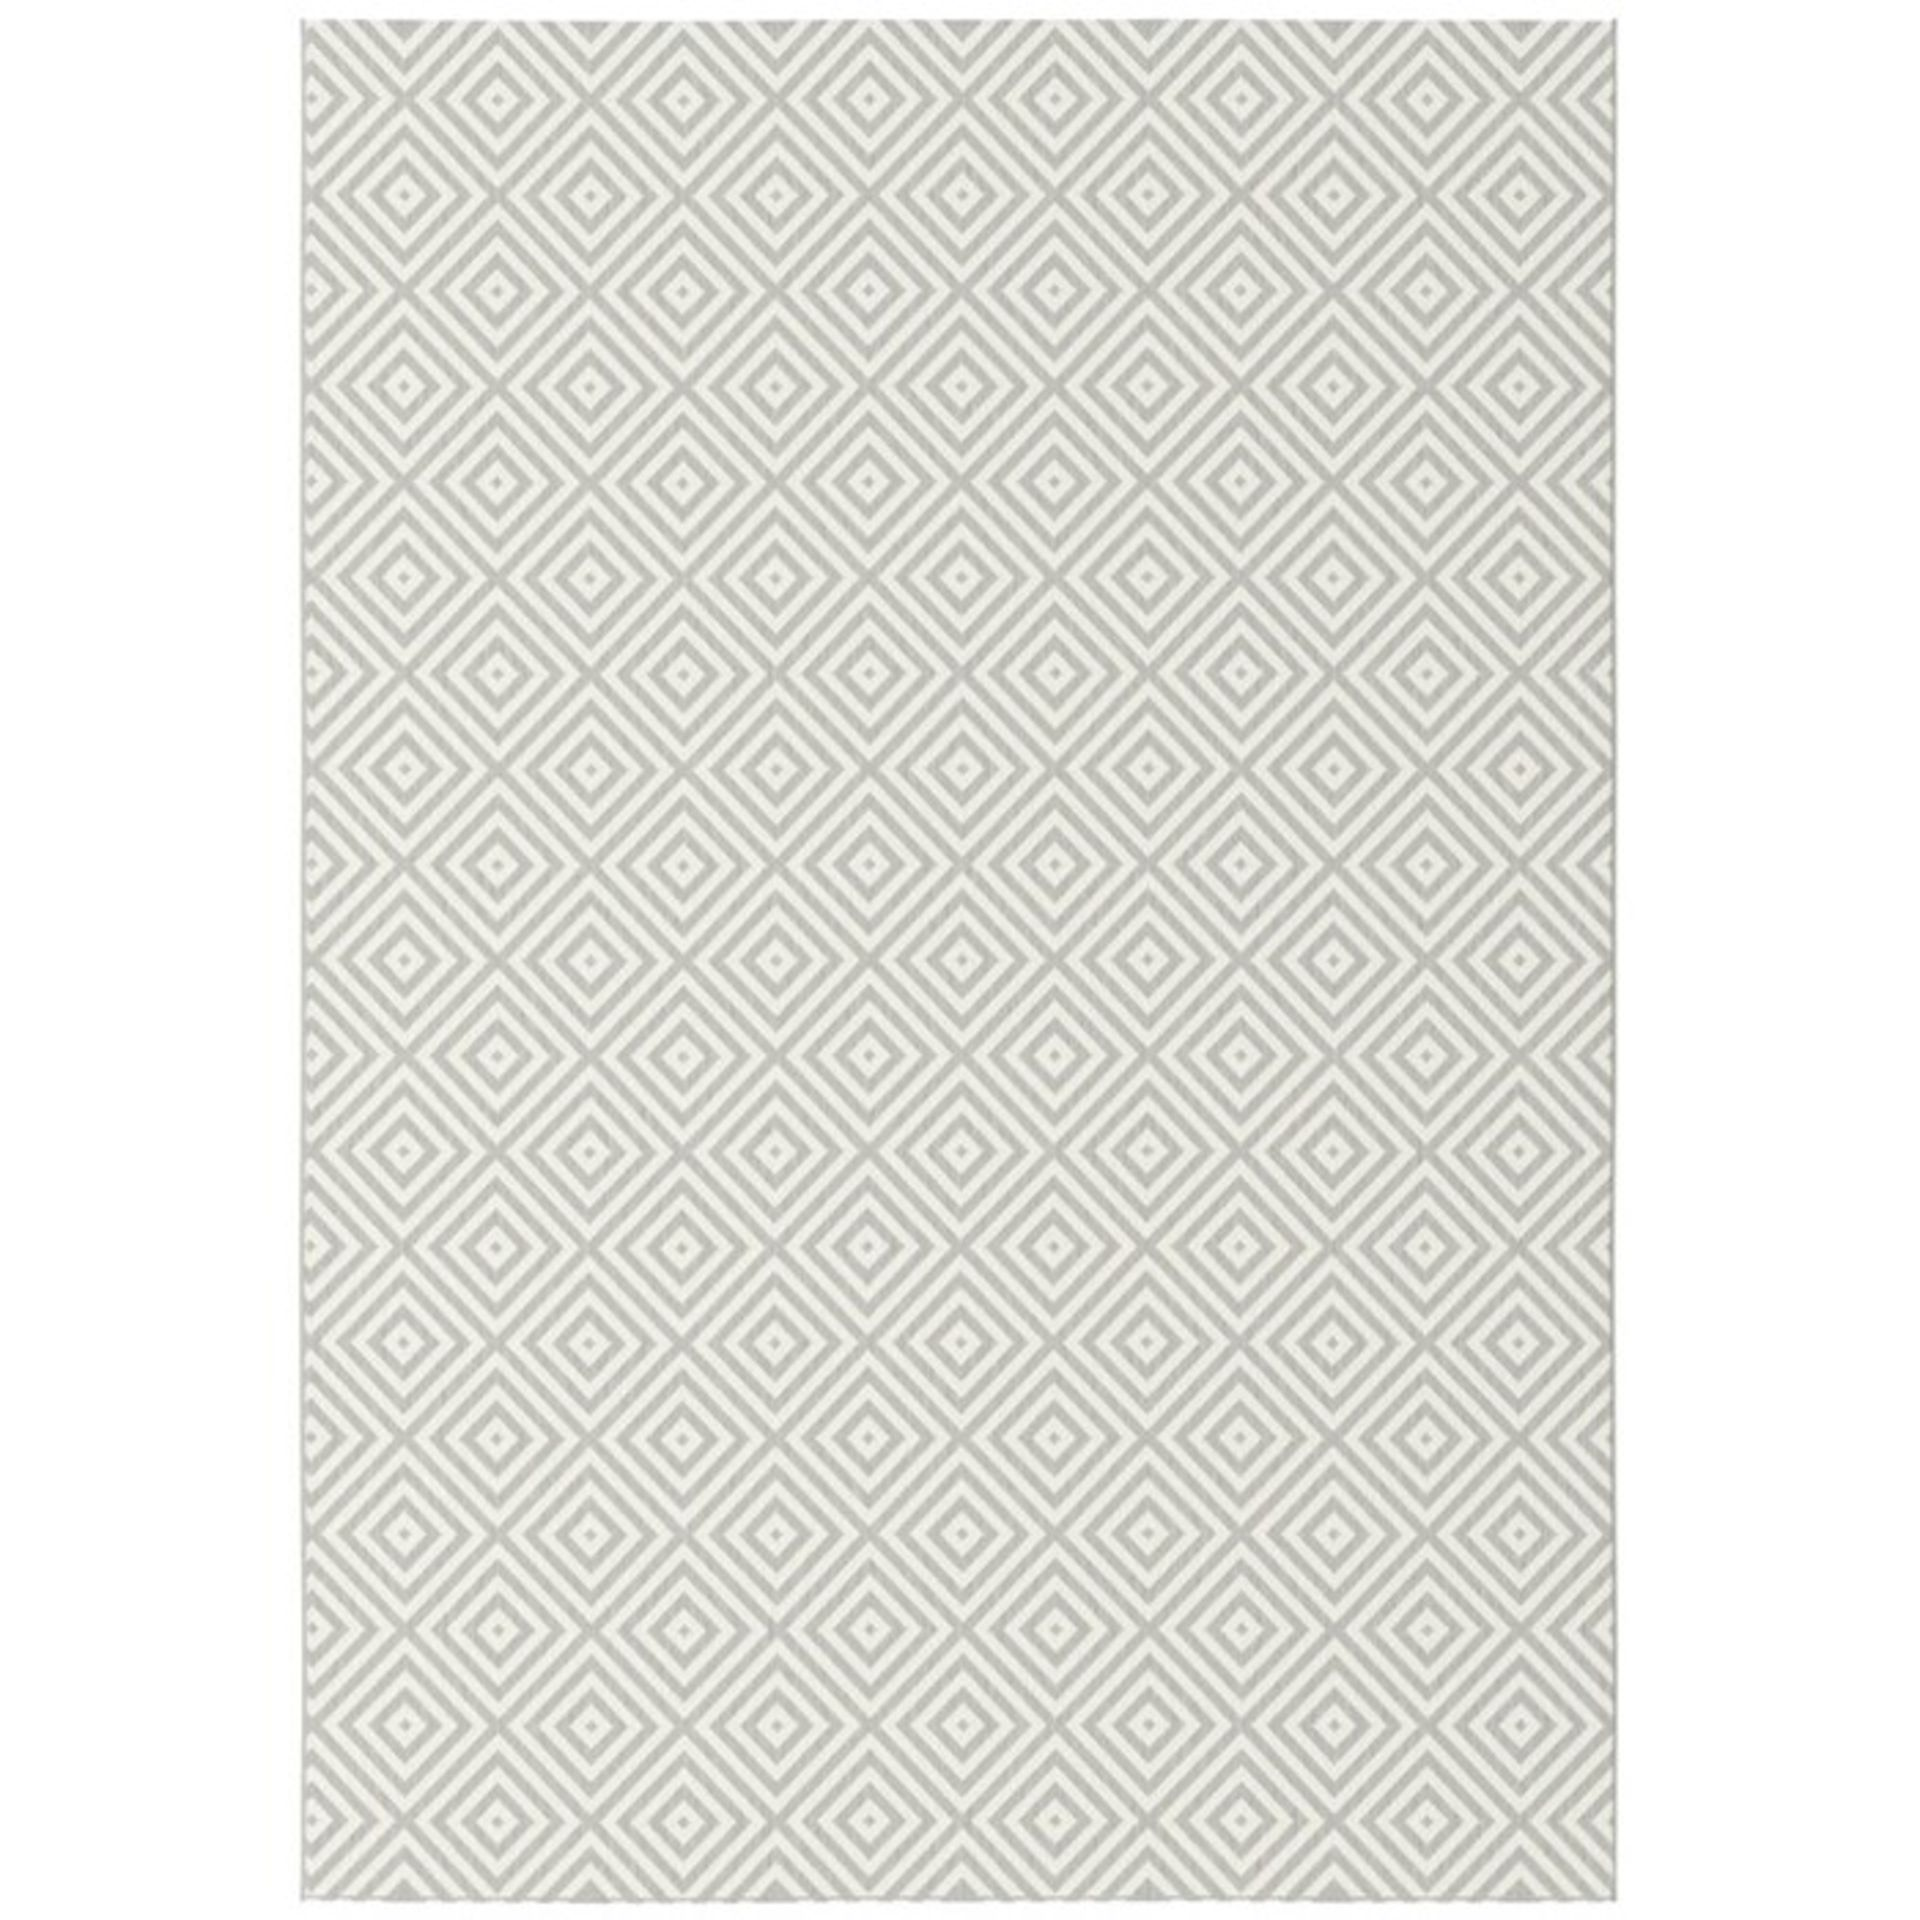 17 Stories,Cathryn Grey Indoor/Outdoor Rug - RRP £35.82 (BINV1194 -17633/13)